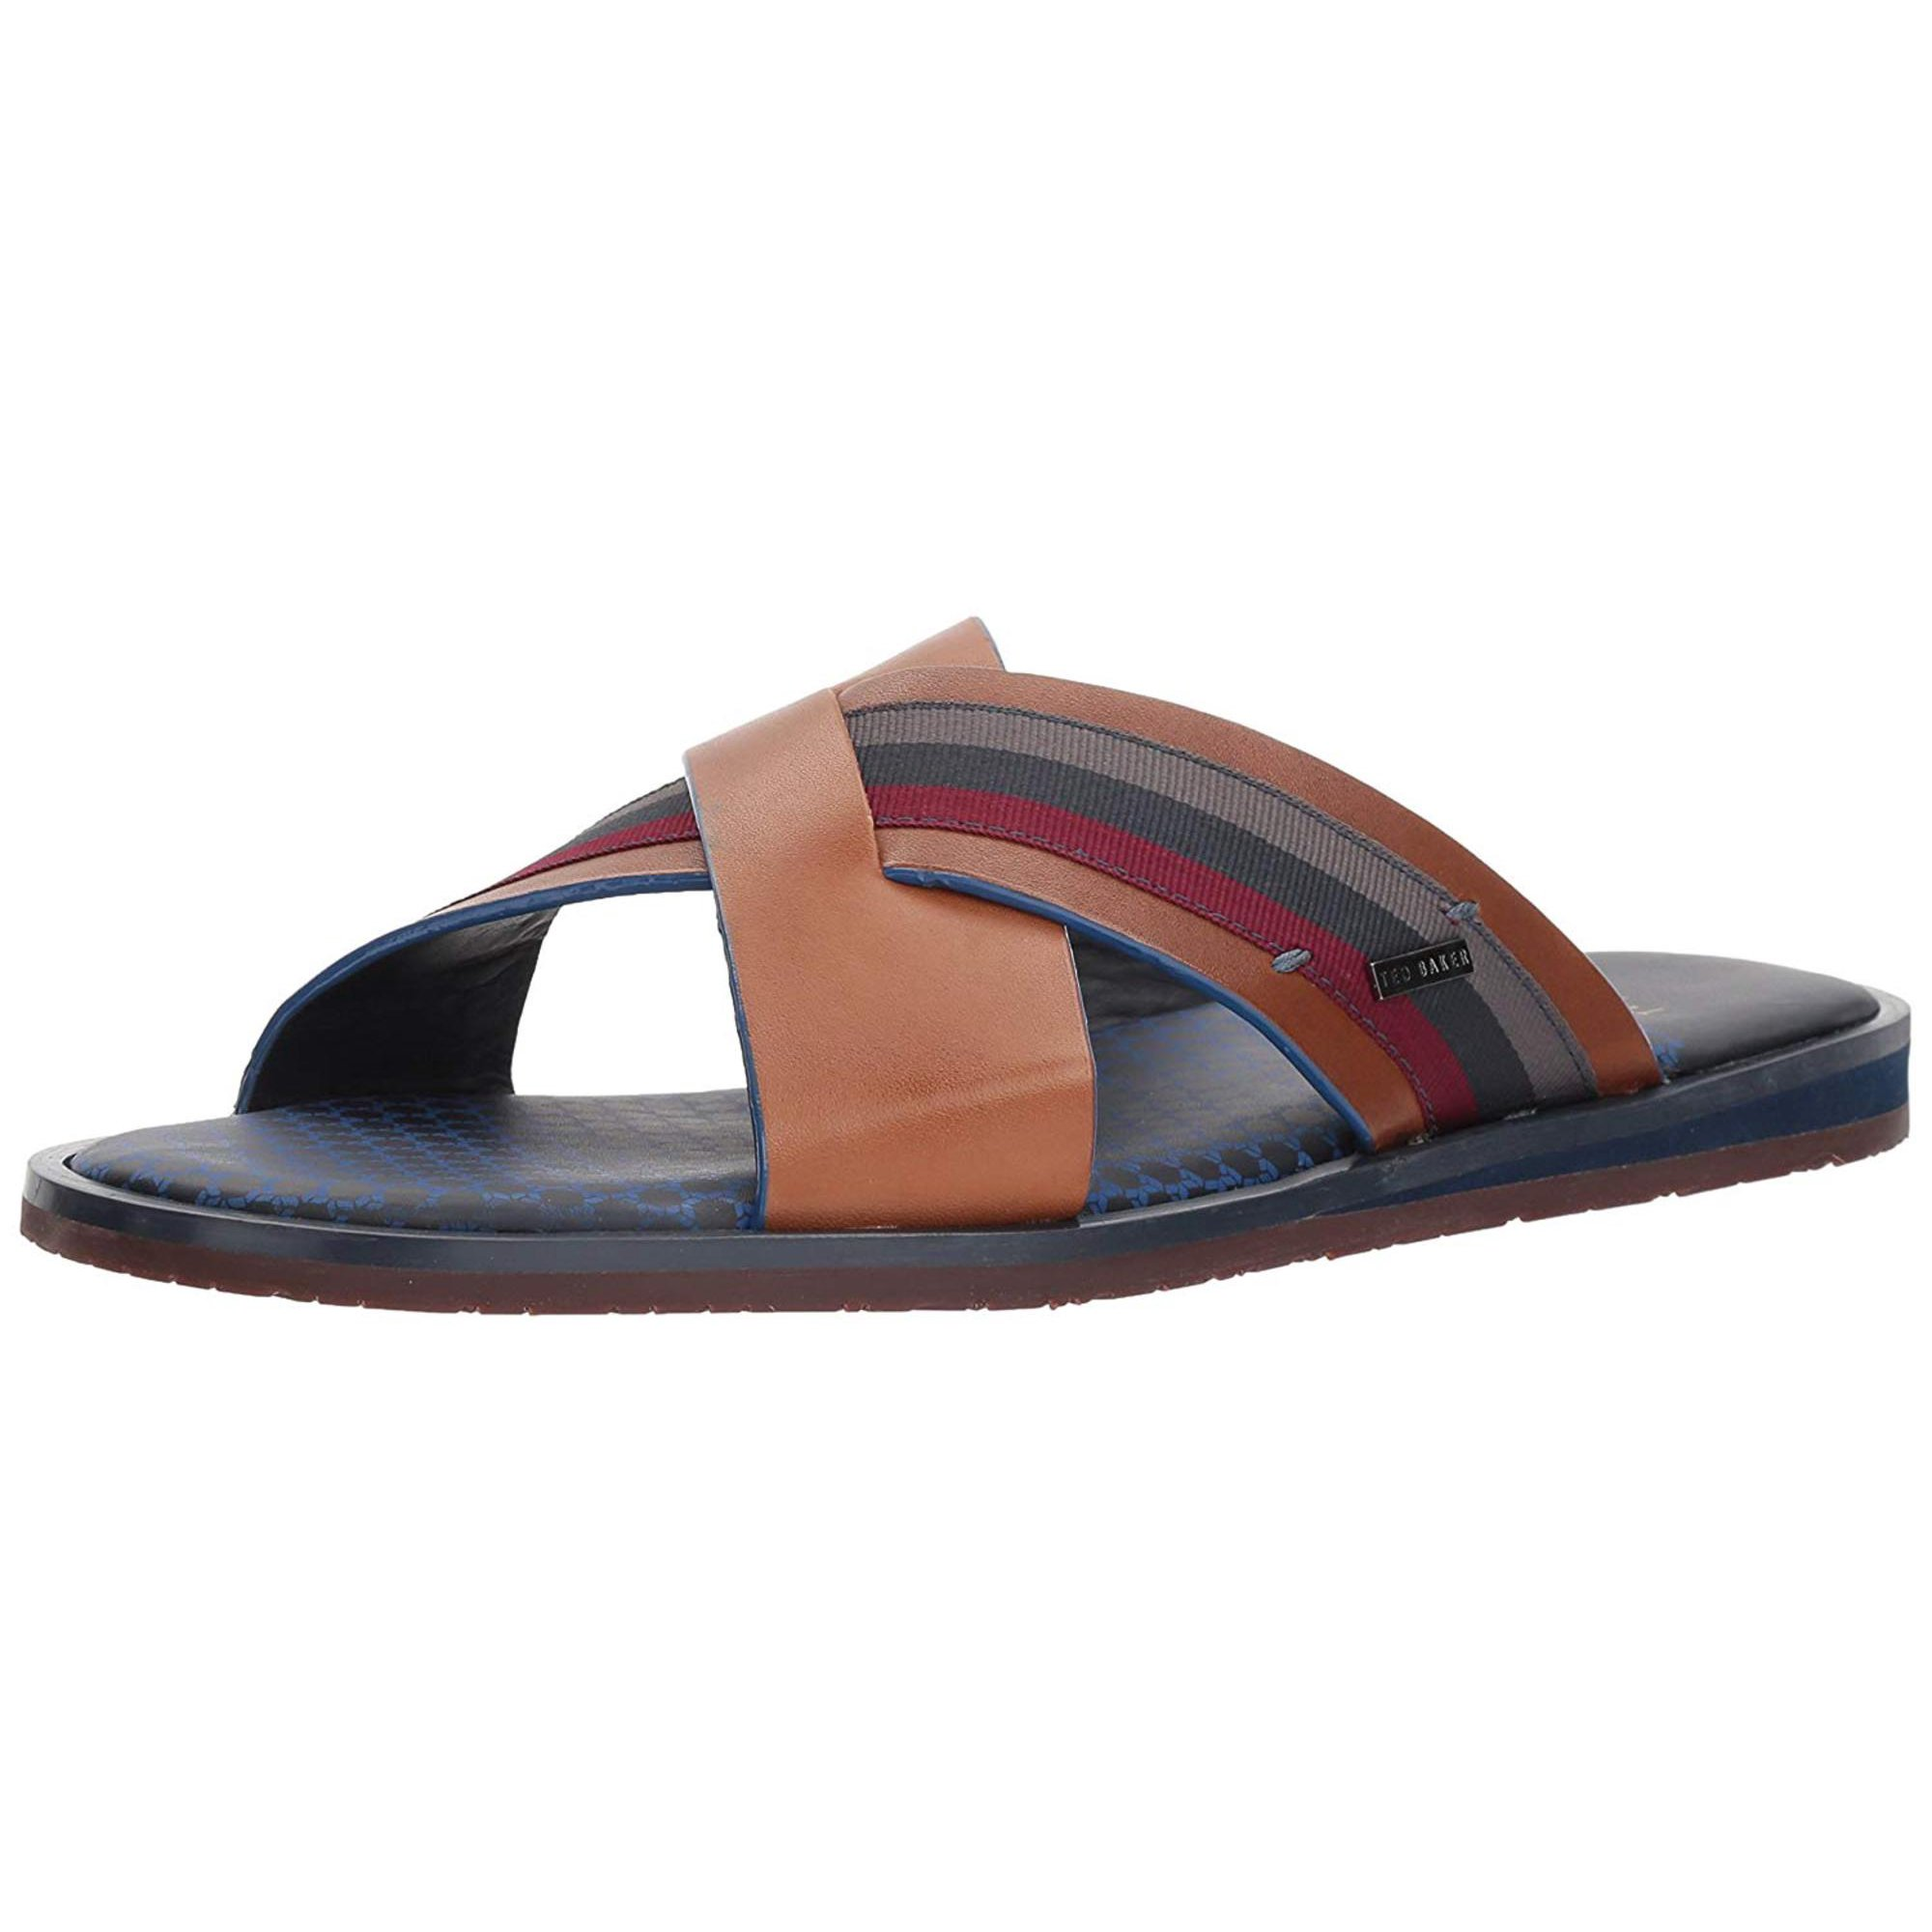 fb0d3da22 Ted Baker Men s Farrull Slide